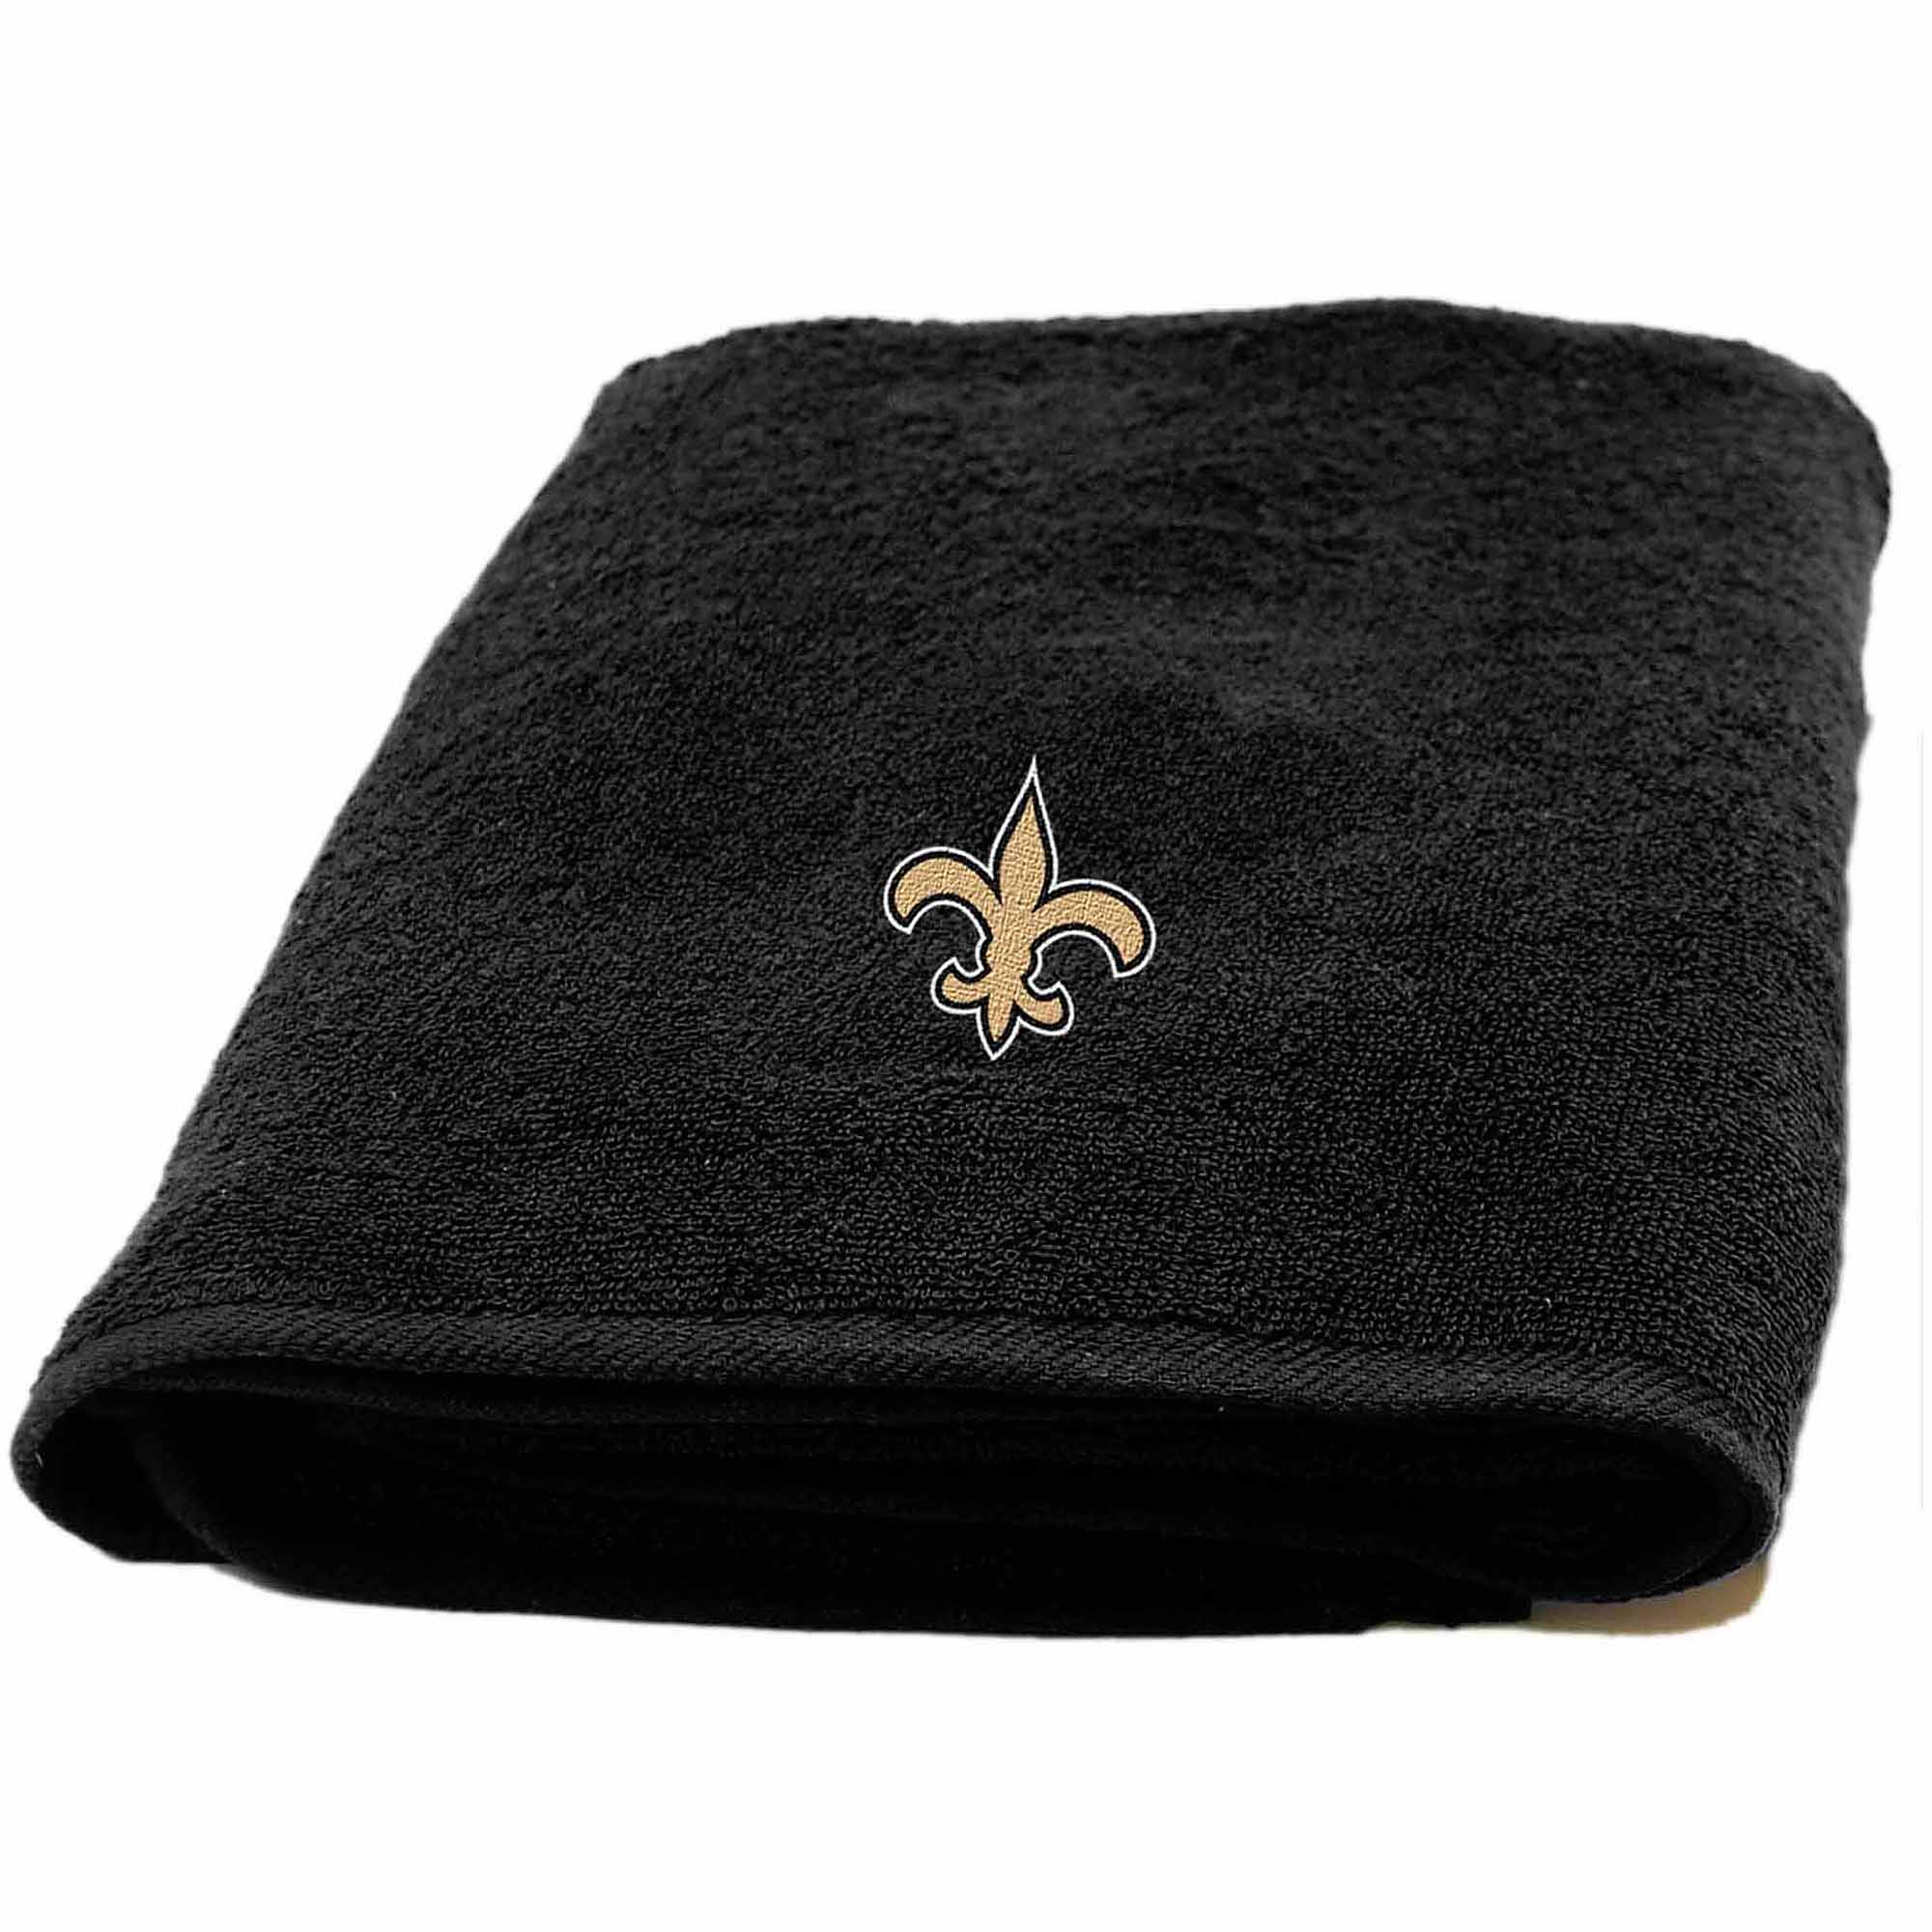 NFL New Oreans Saints Decorative Bath Collection - Bath ToweL